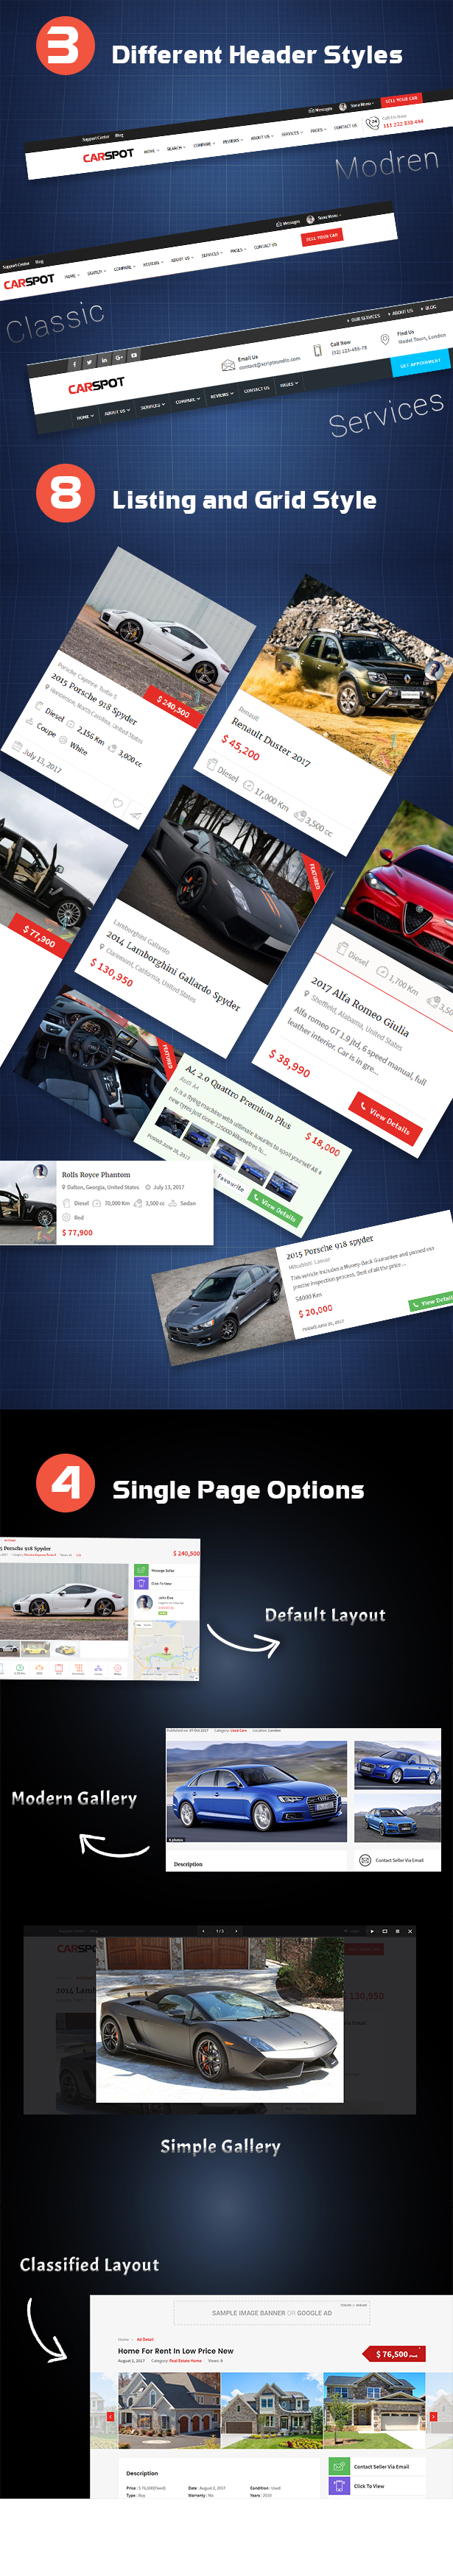 wordpress automotive theme header styles